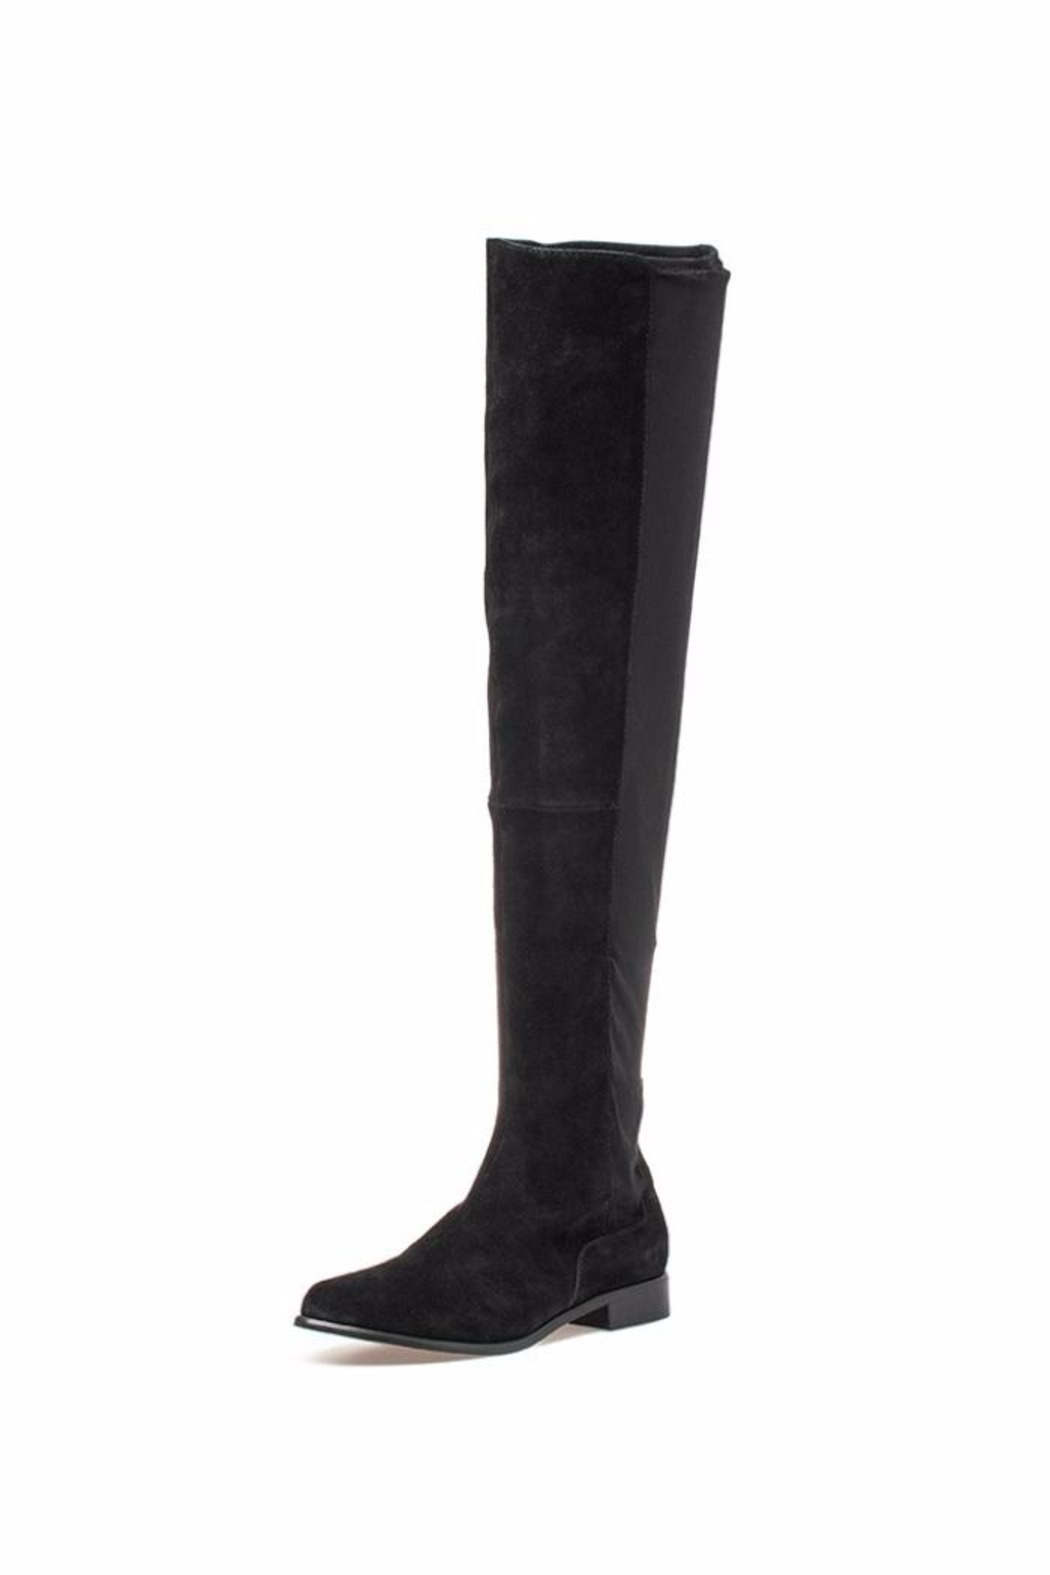 Olympia Black Boot